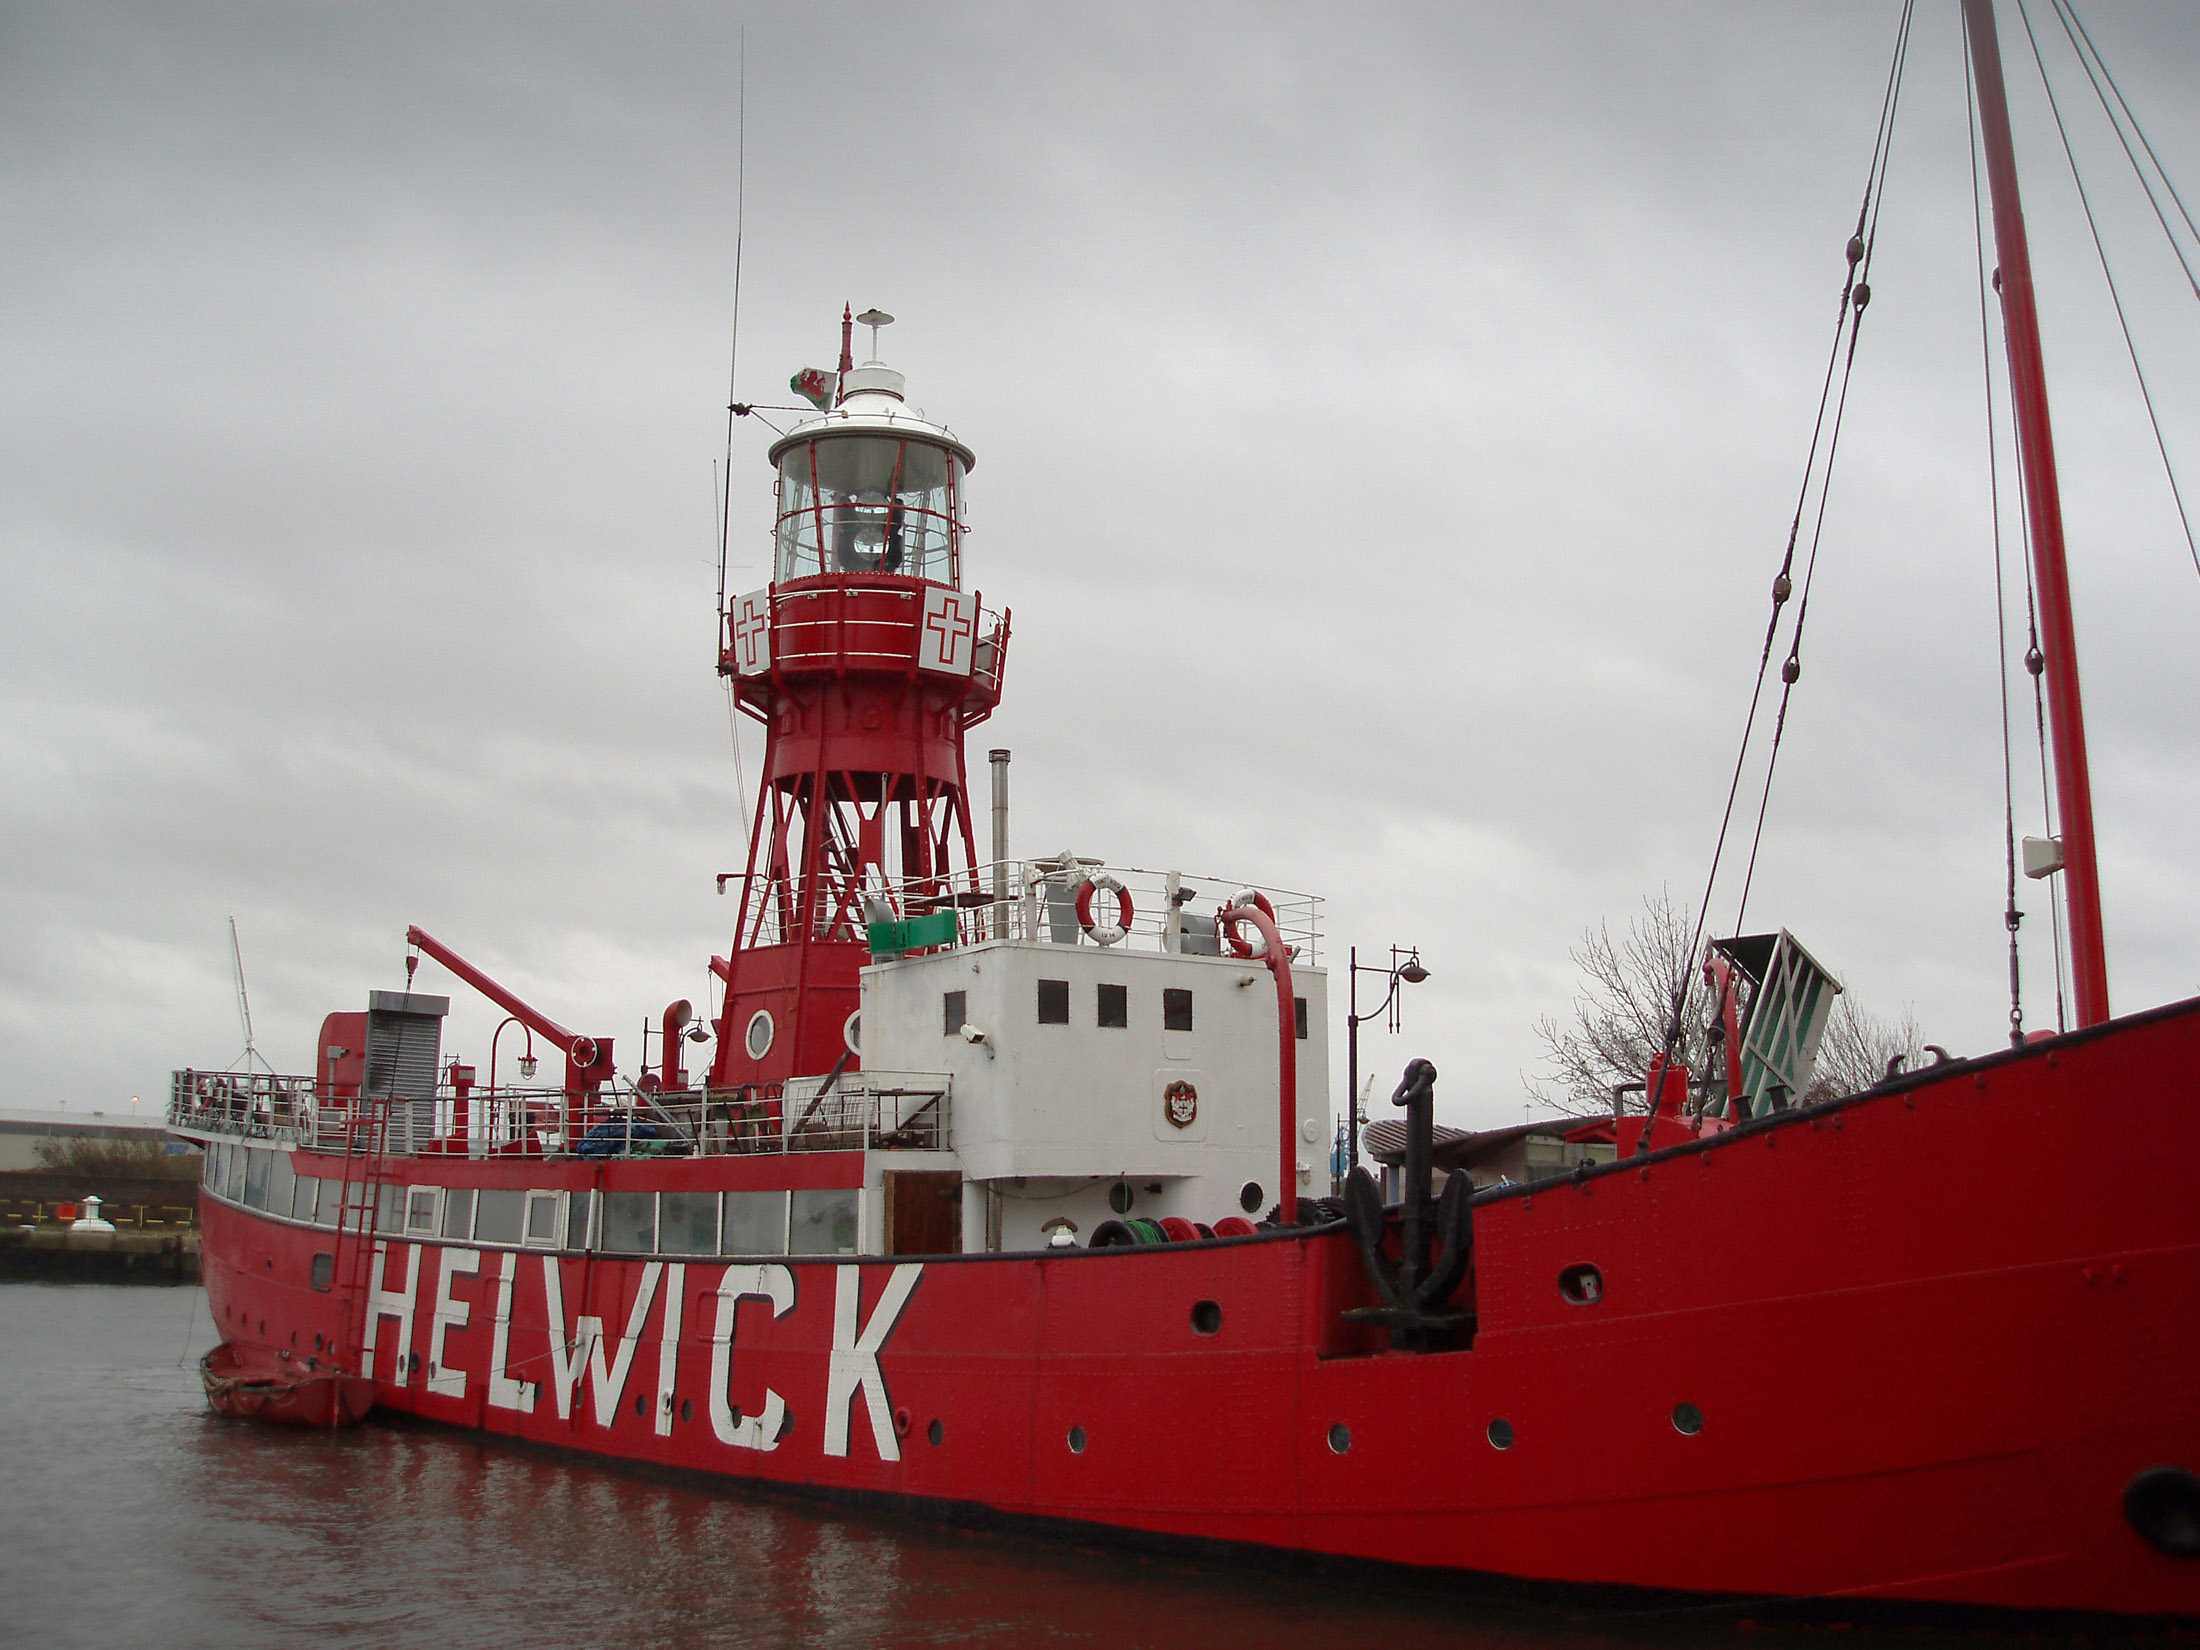 Historical Red Helwick Lightship at the Dock of Cardiff Bay, Wales. Captured on a Gray Sky Background.